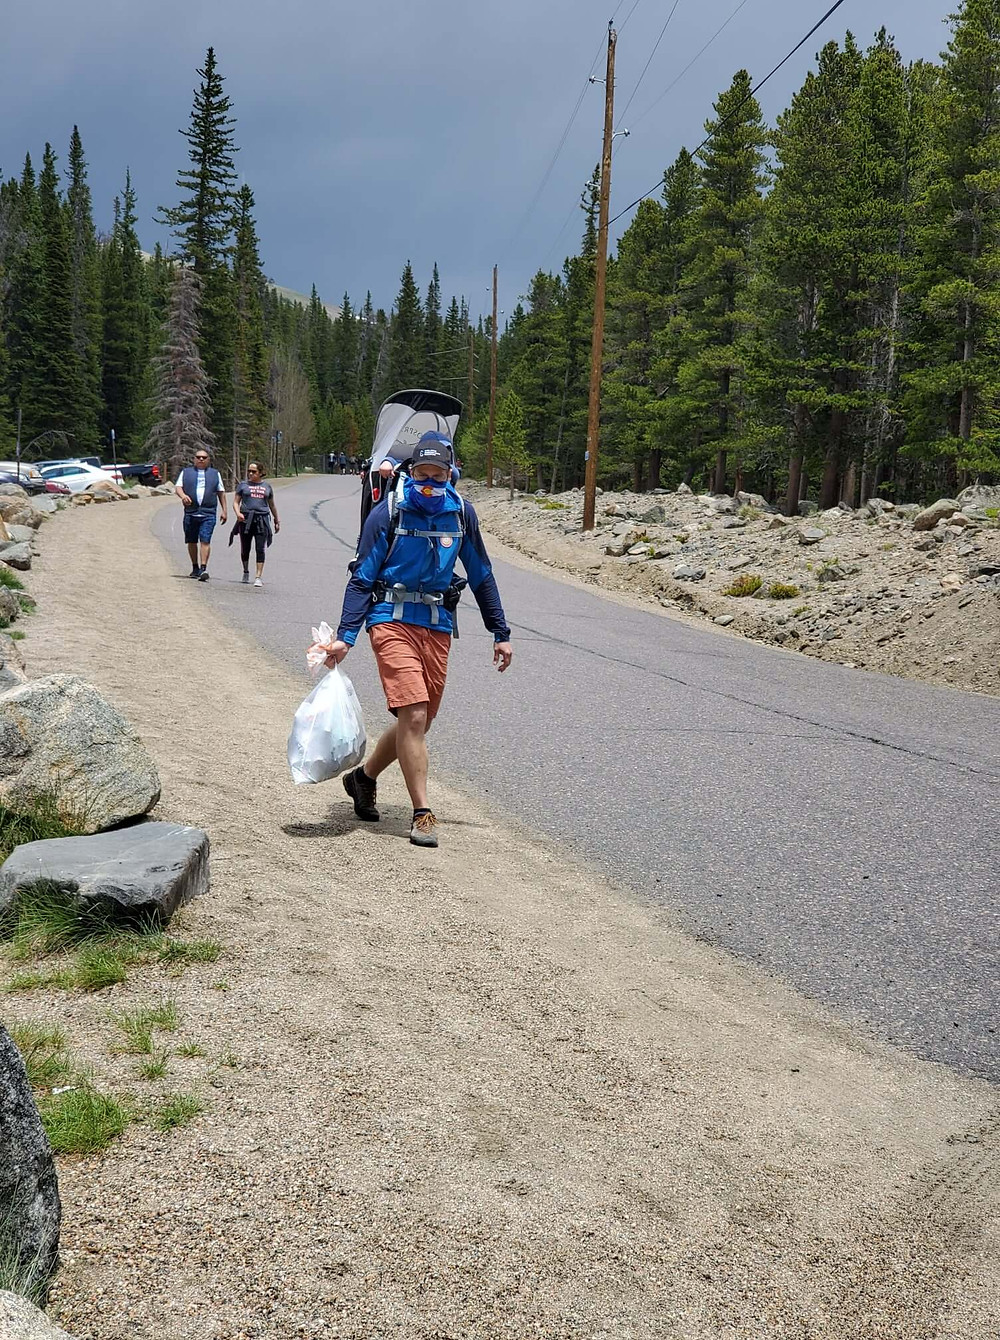 Leave No Trace principles at work